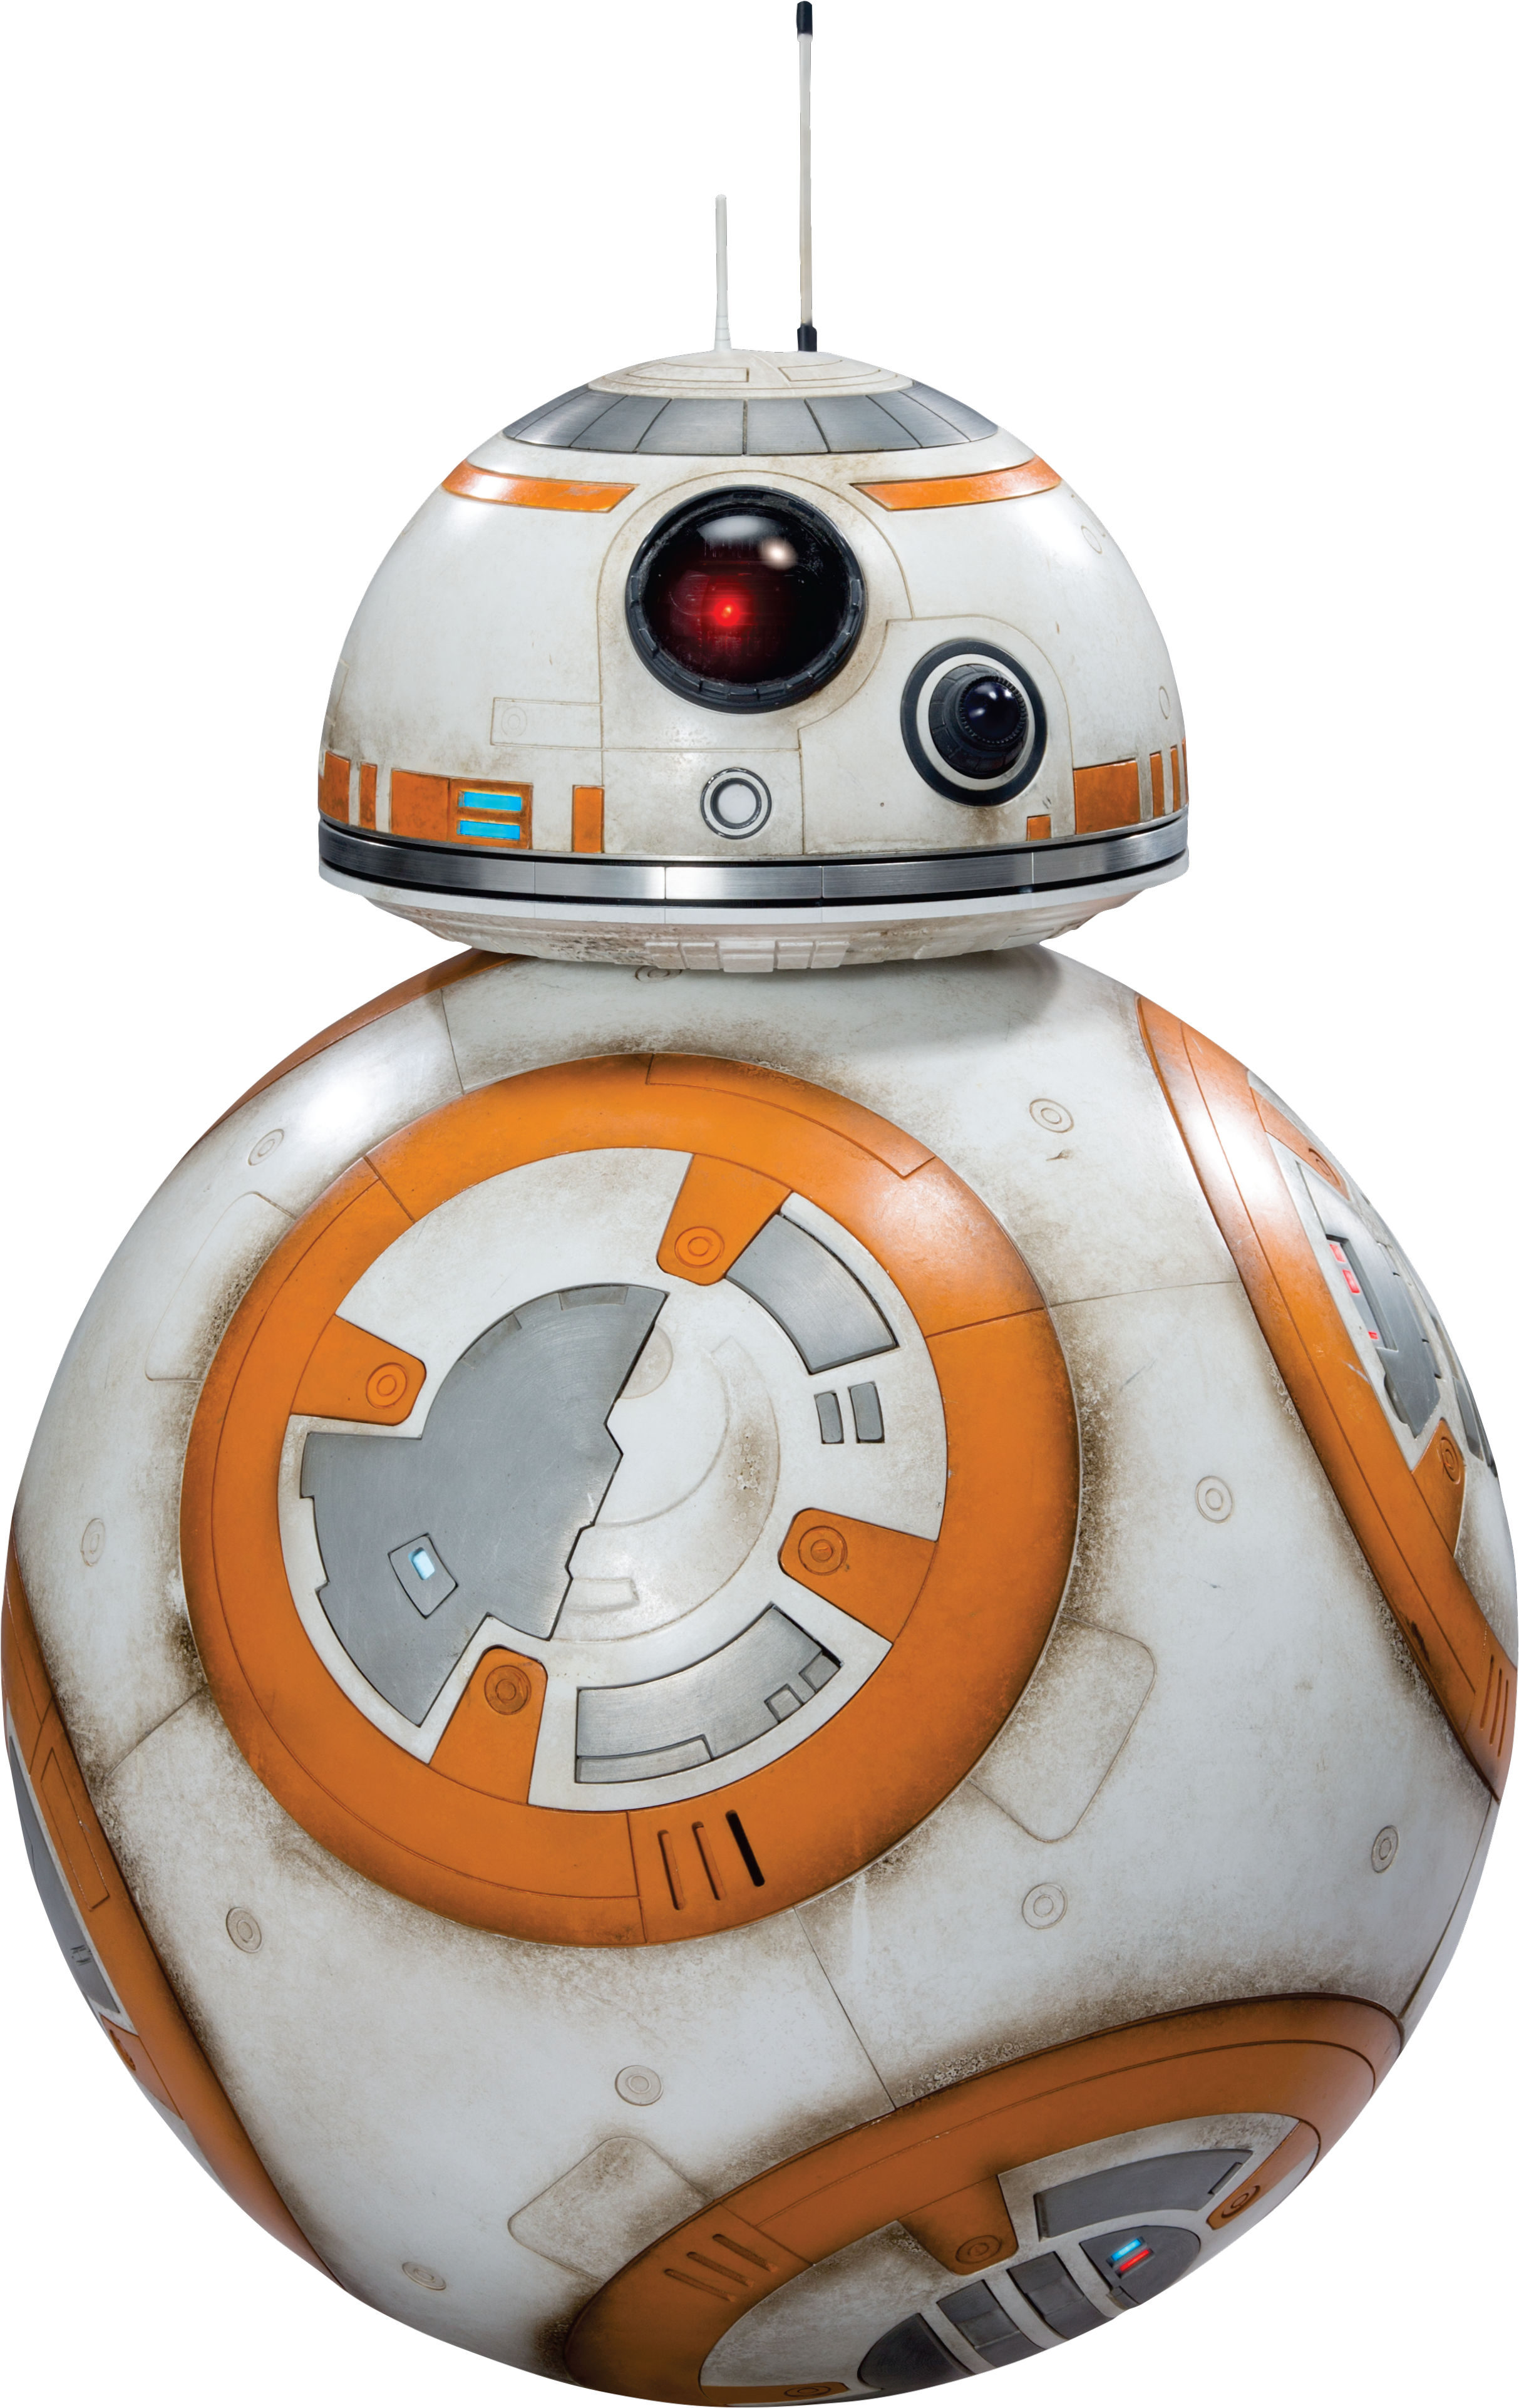 Transparent bb-8 clipart - Latest Bb8, Episode Vii, Vintage Style Outfits, Star - Star Wars Bb8